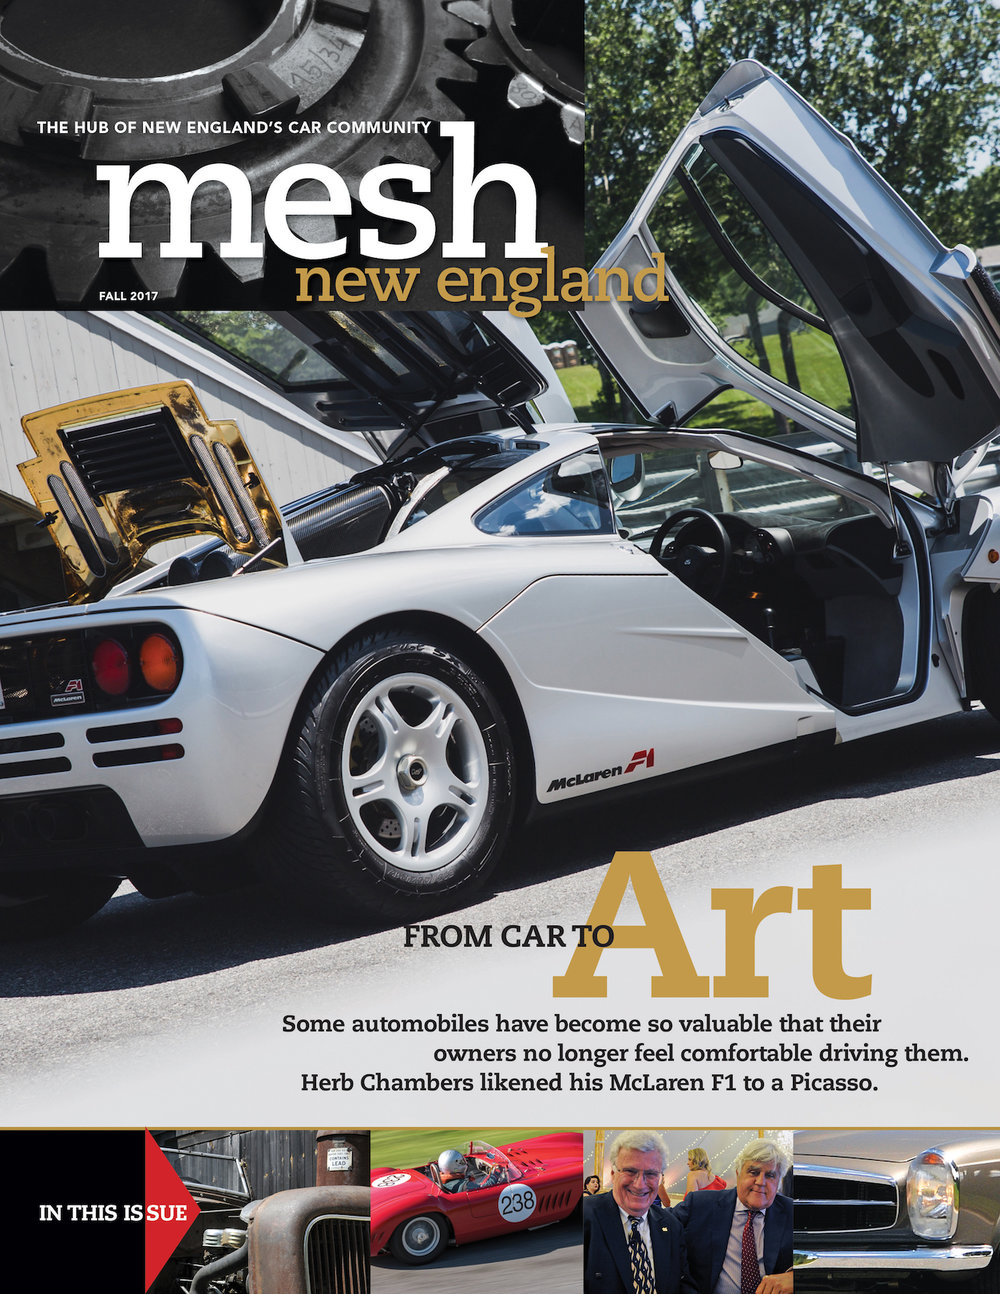 Fall 2017 cover of mesh new england magazine with silver mclaren F1 pictured on the front.jpg